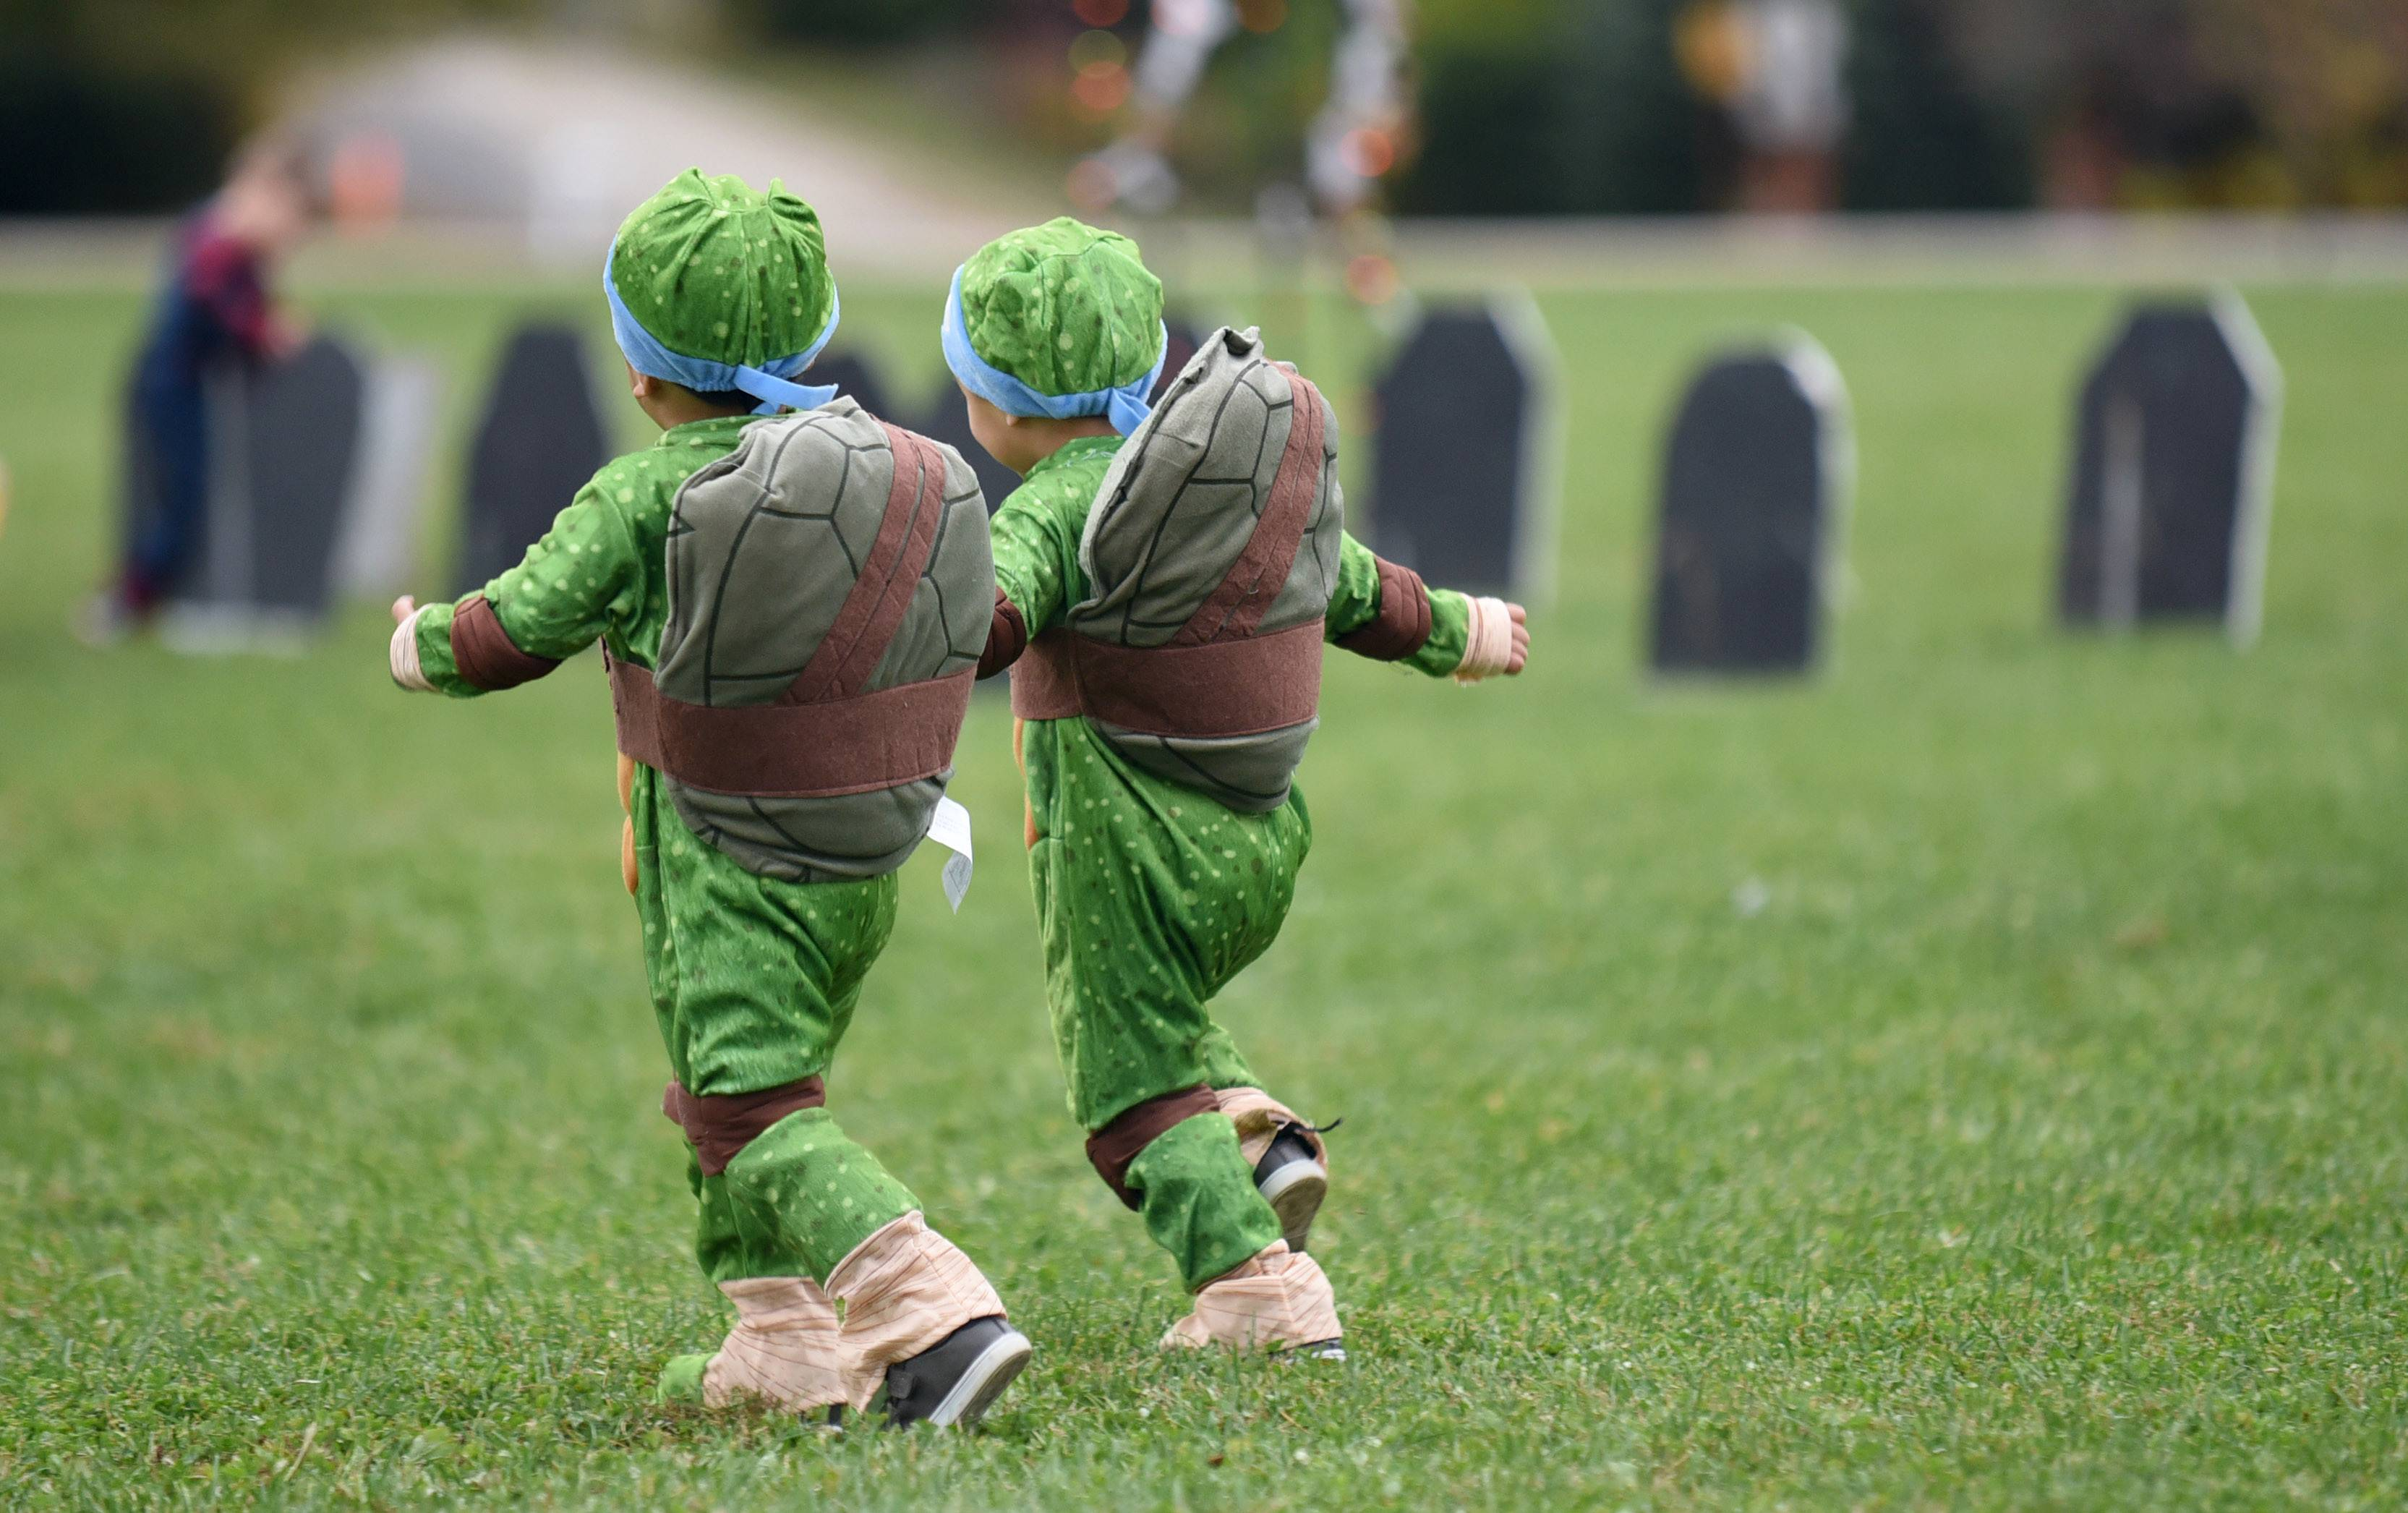 Twin brothers Liam, left, and Luca Rodriguez, 2, of Elgin runs together near a mock cemetery at the annual Halloween in the Hollow in Sleepy Hollow Saturday. The duo dressed as Teenage Mutant Ninja Turtles (their new favorite cartoon) for their first time attending the event.